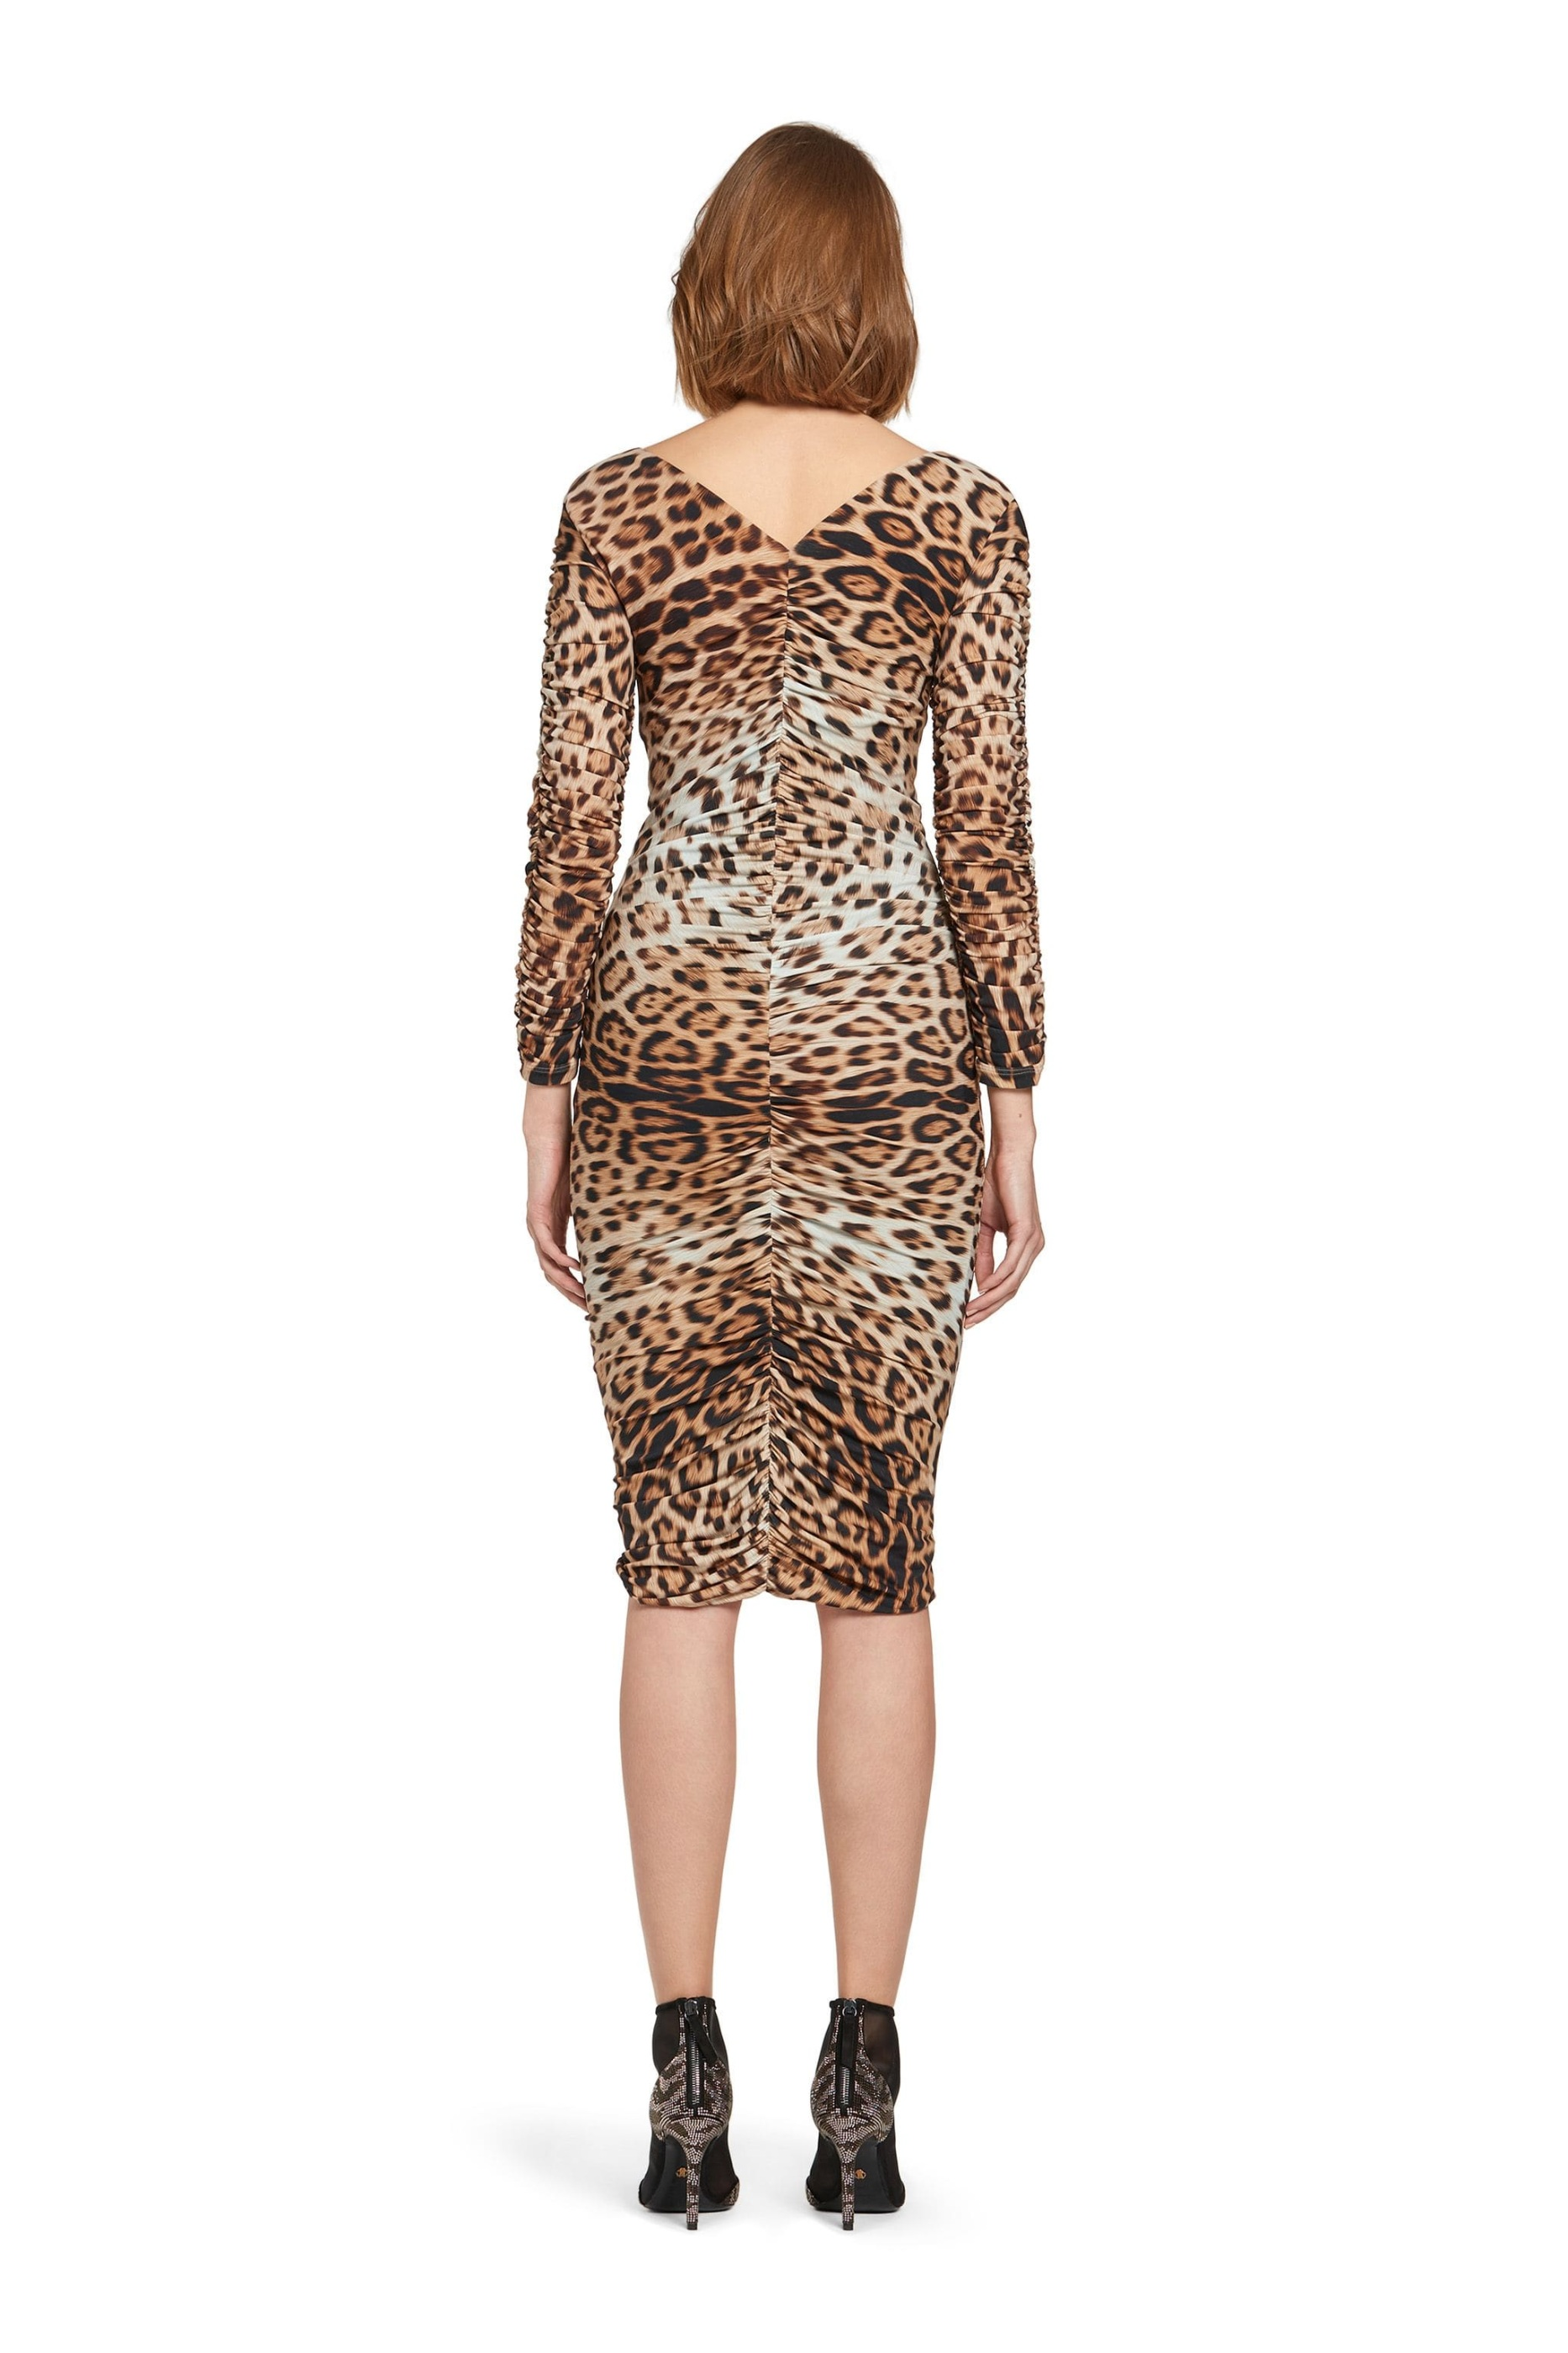 roberto-cavalli-heritage-jaguar-print-ruched-dress_13753611_18866425_2048